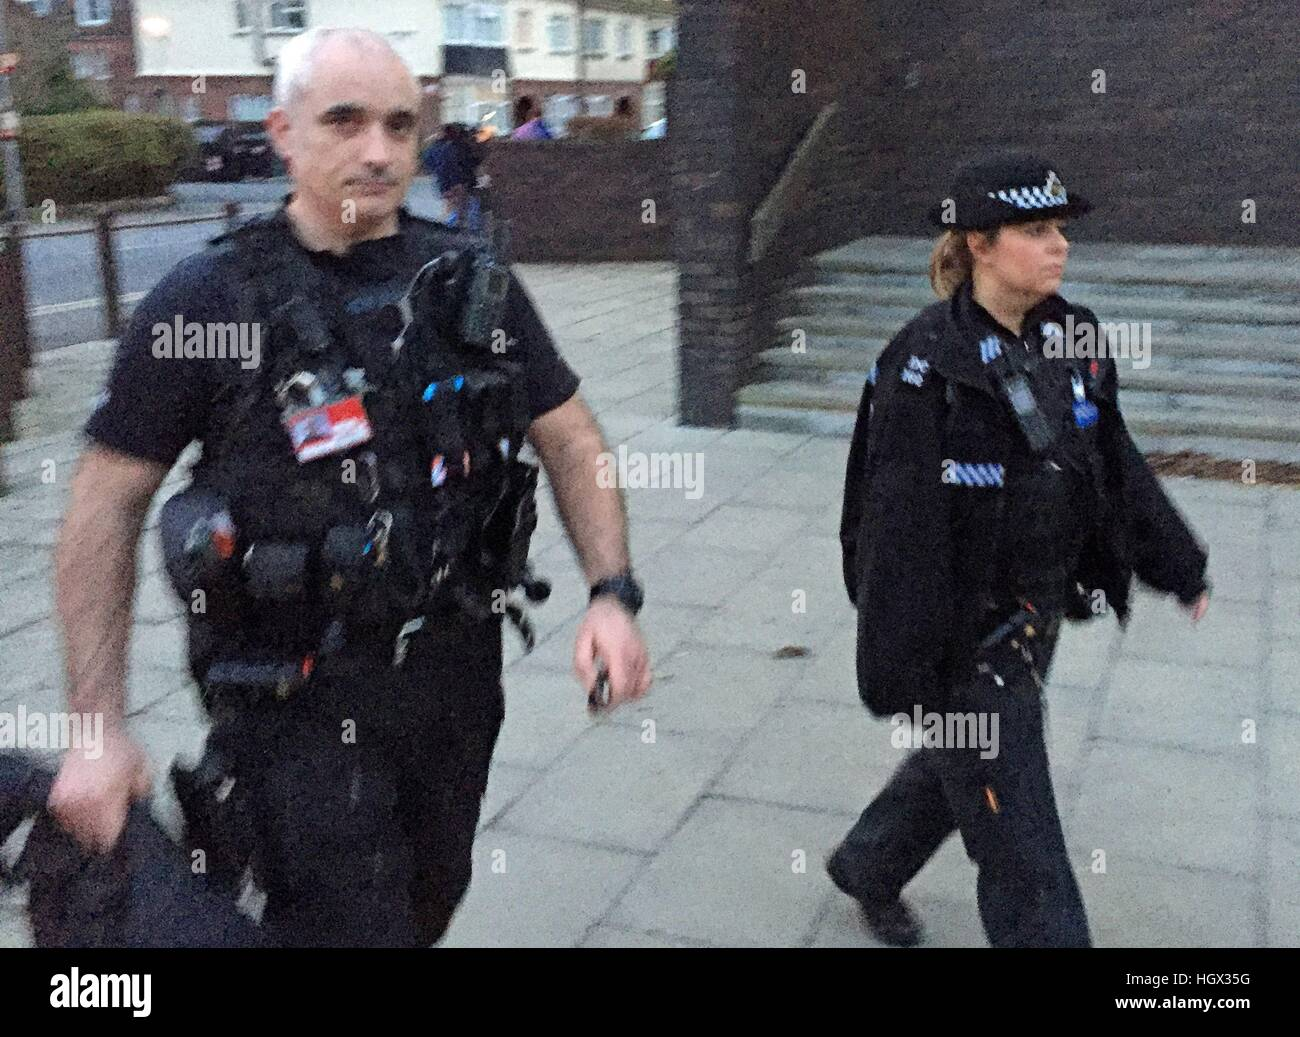 BEST QUALITY AVAILABLE Police Constables Jessica Chick and Stuart Young, who were attacked with a hammer by Afghan - Stock Image